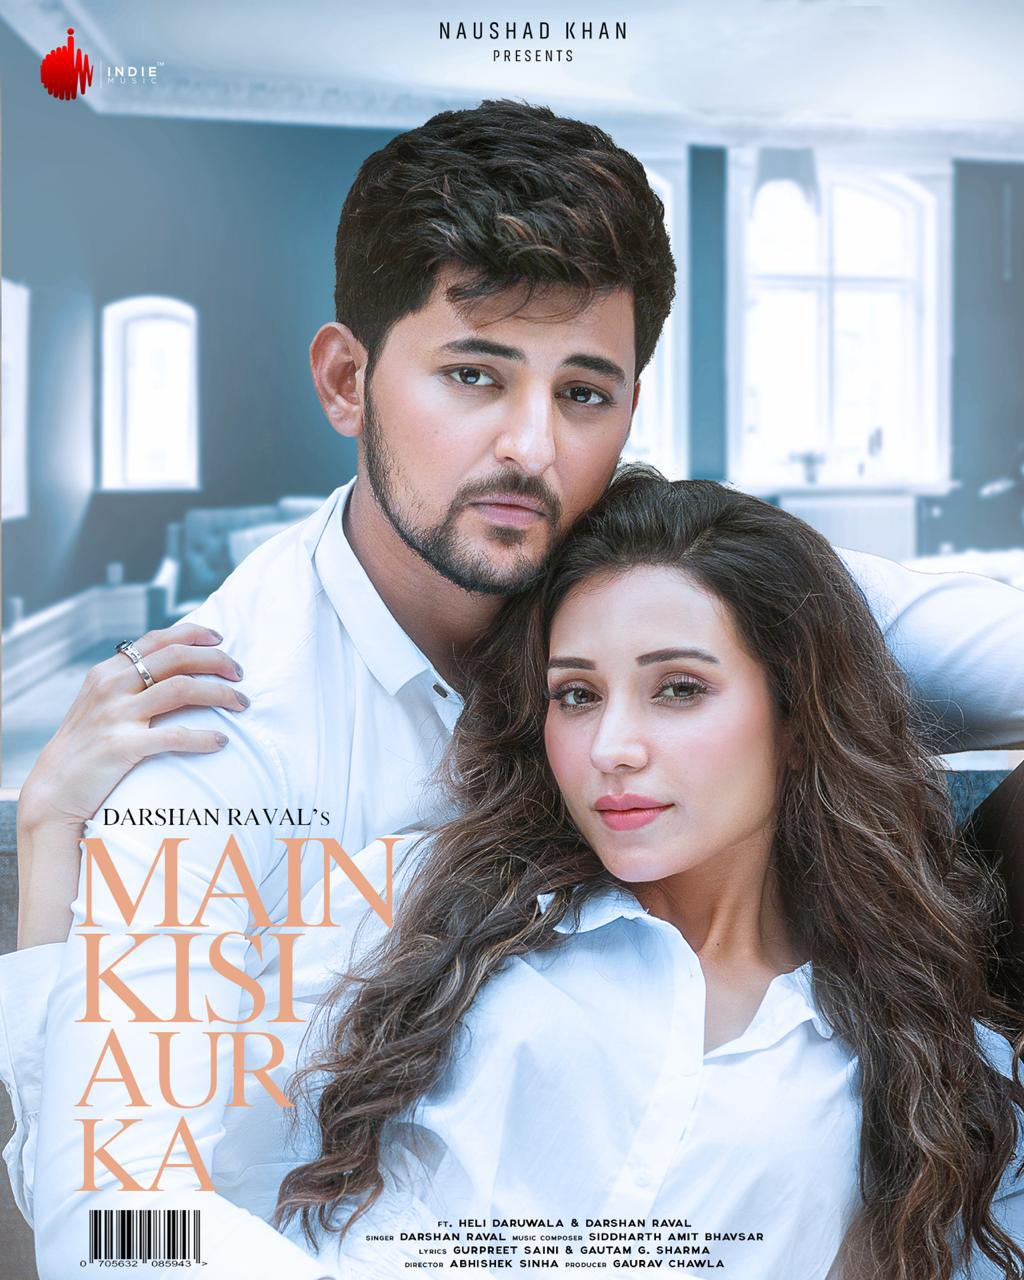 Main Kisi Aur Ka By Darshan Raval Official Music Video 1080p HDRip Download